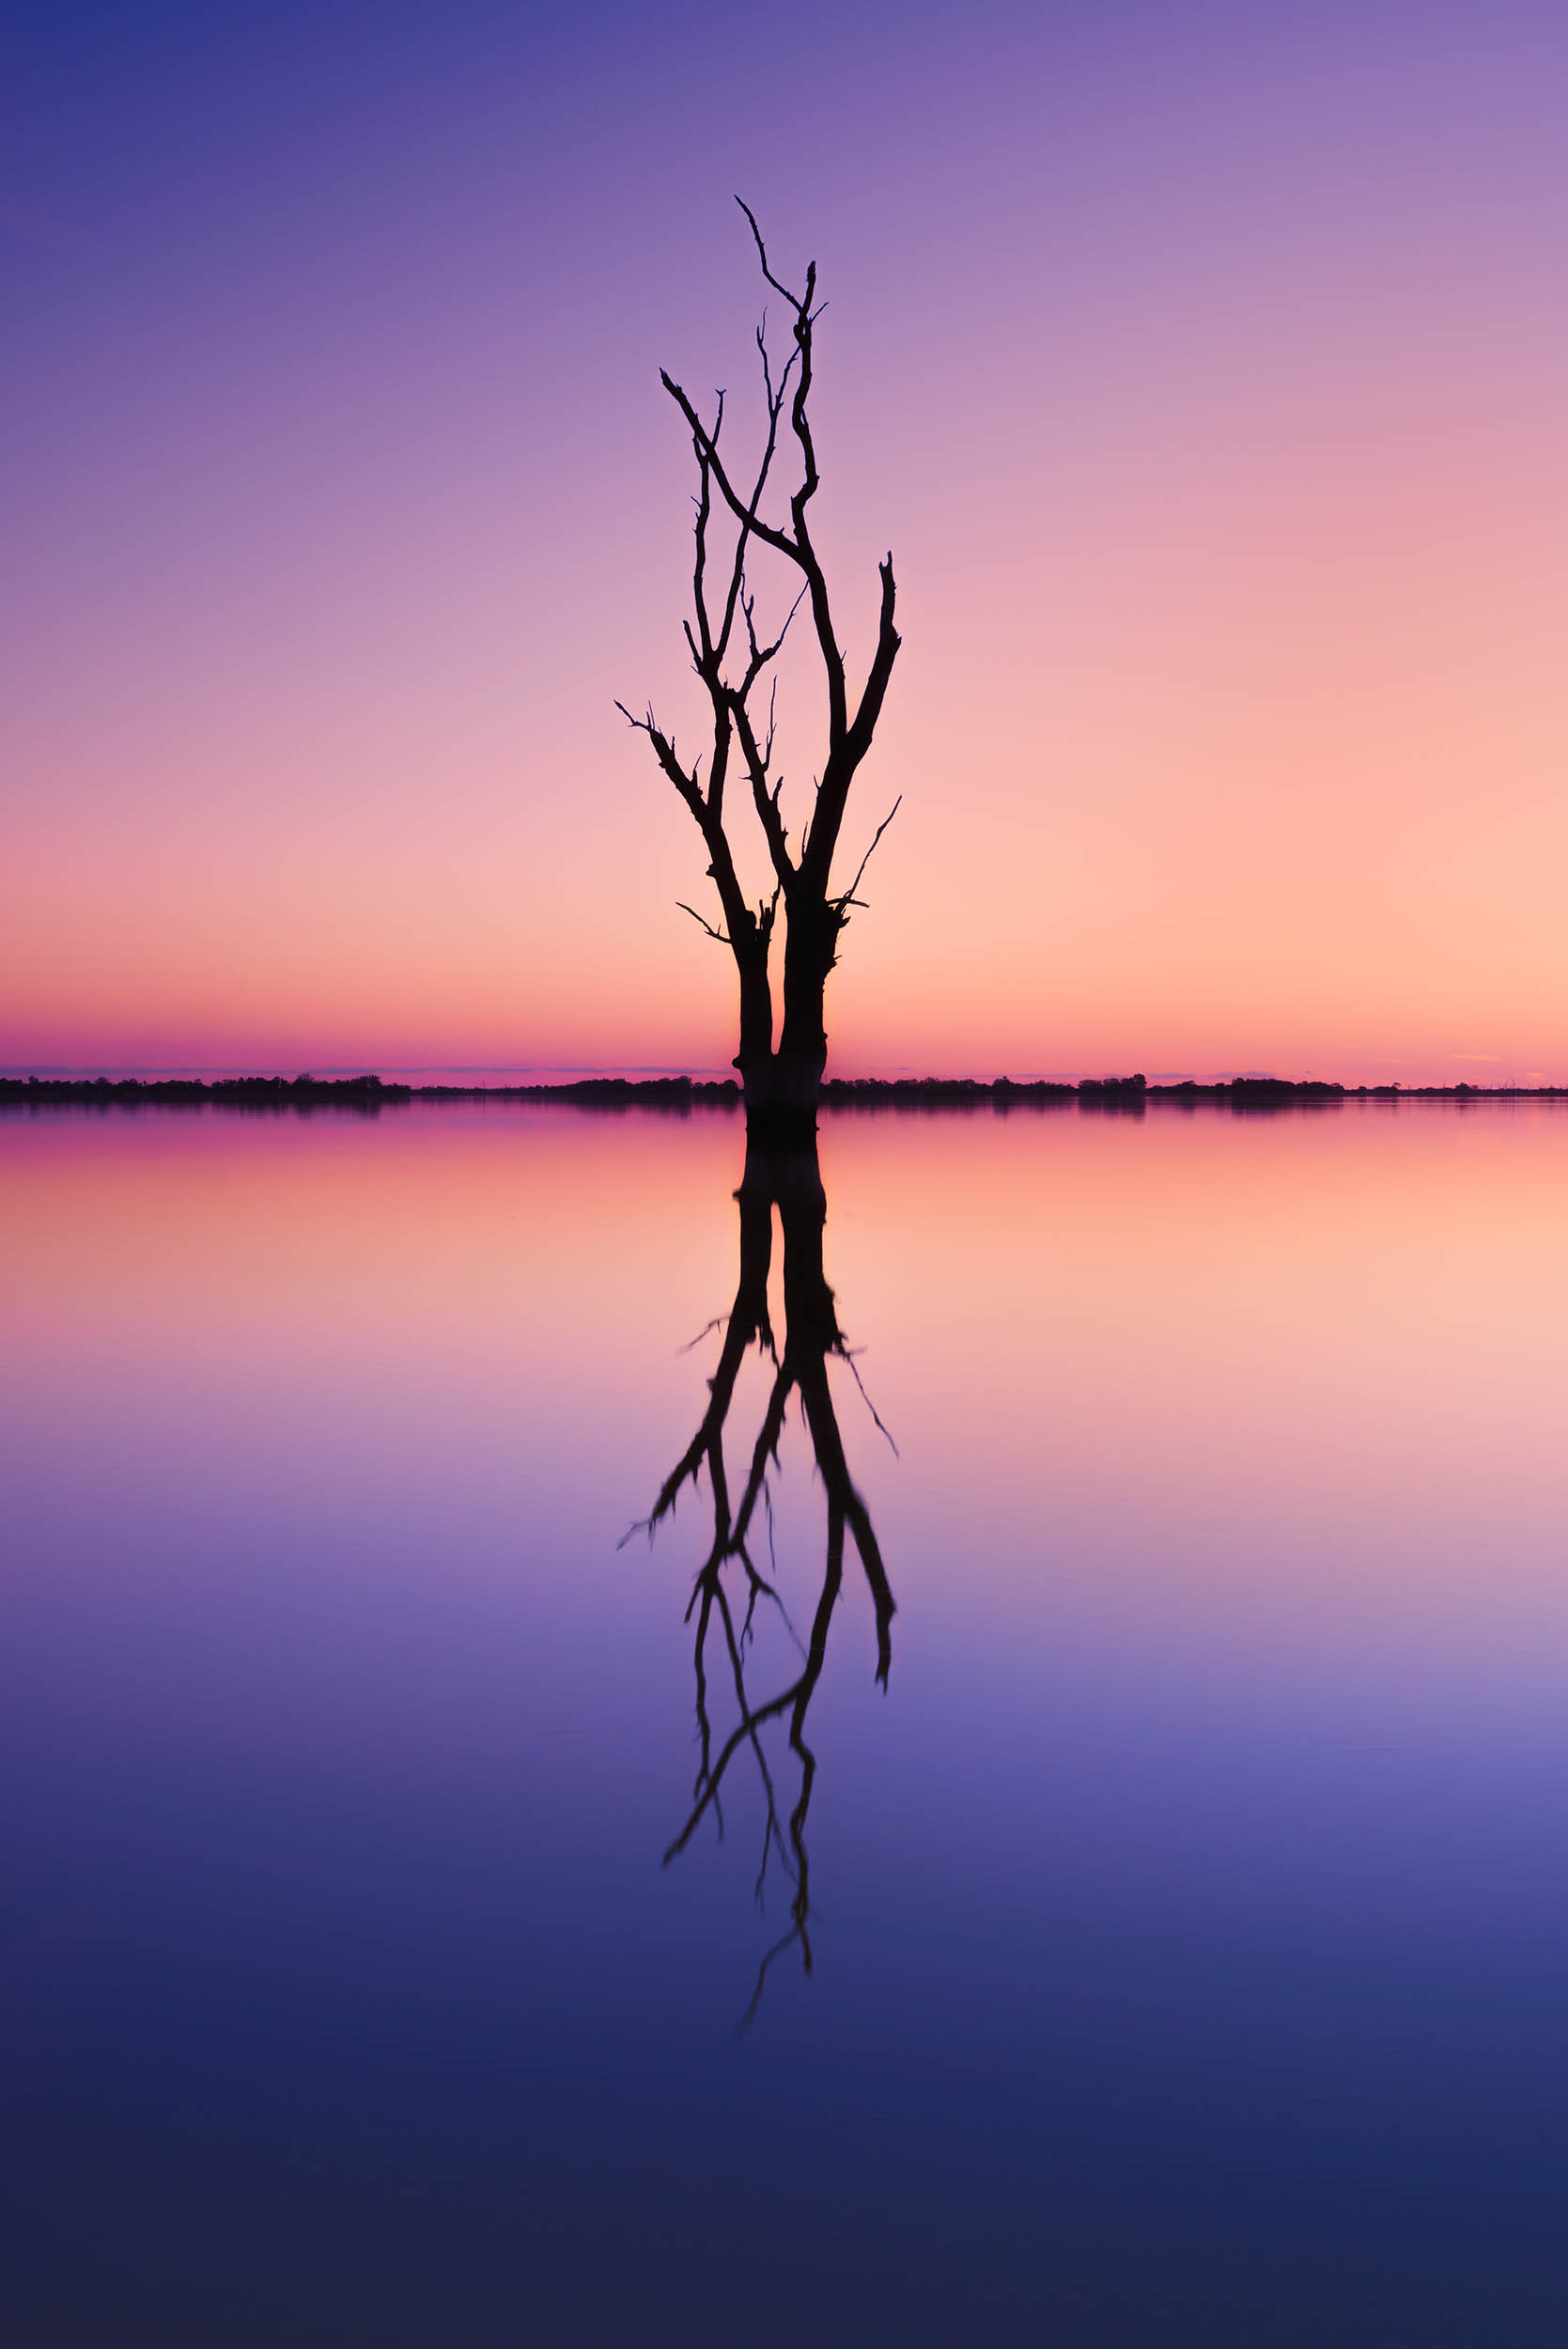 Infinity Pool - Lake Bonney, Riverlands - South Australia